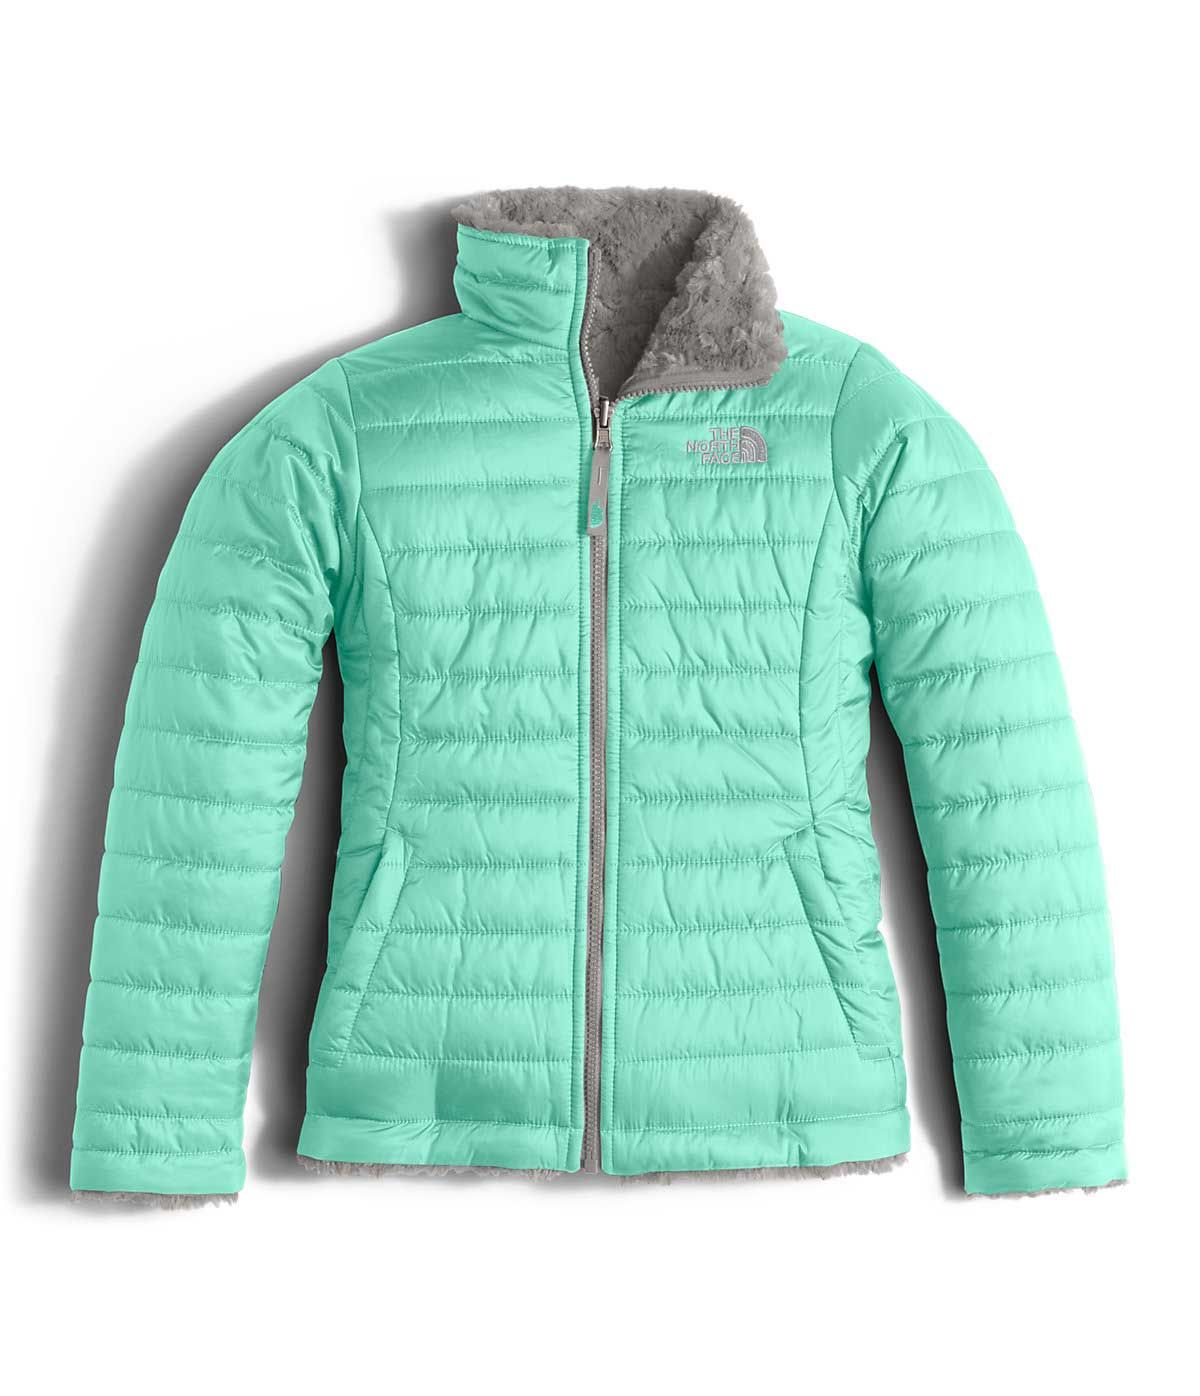 7214ec7dec51 The North Face Reversible Mossbud Swirl Jacket for Girls in Ice Green  NF00CN01-HCM